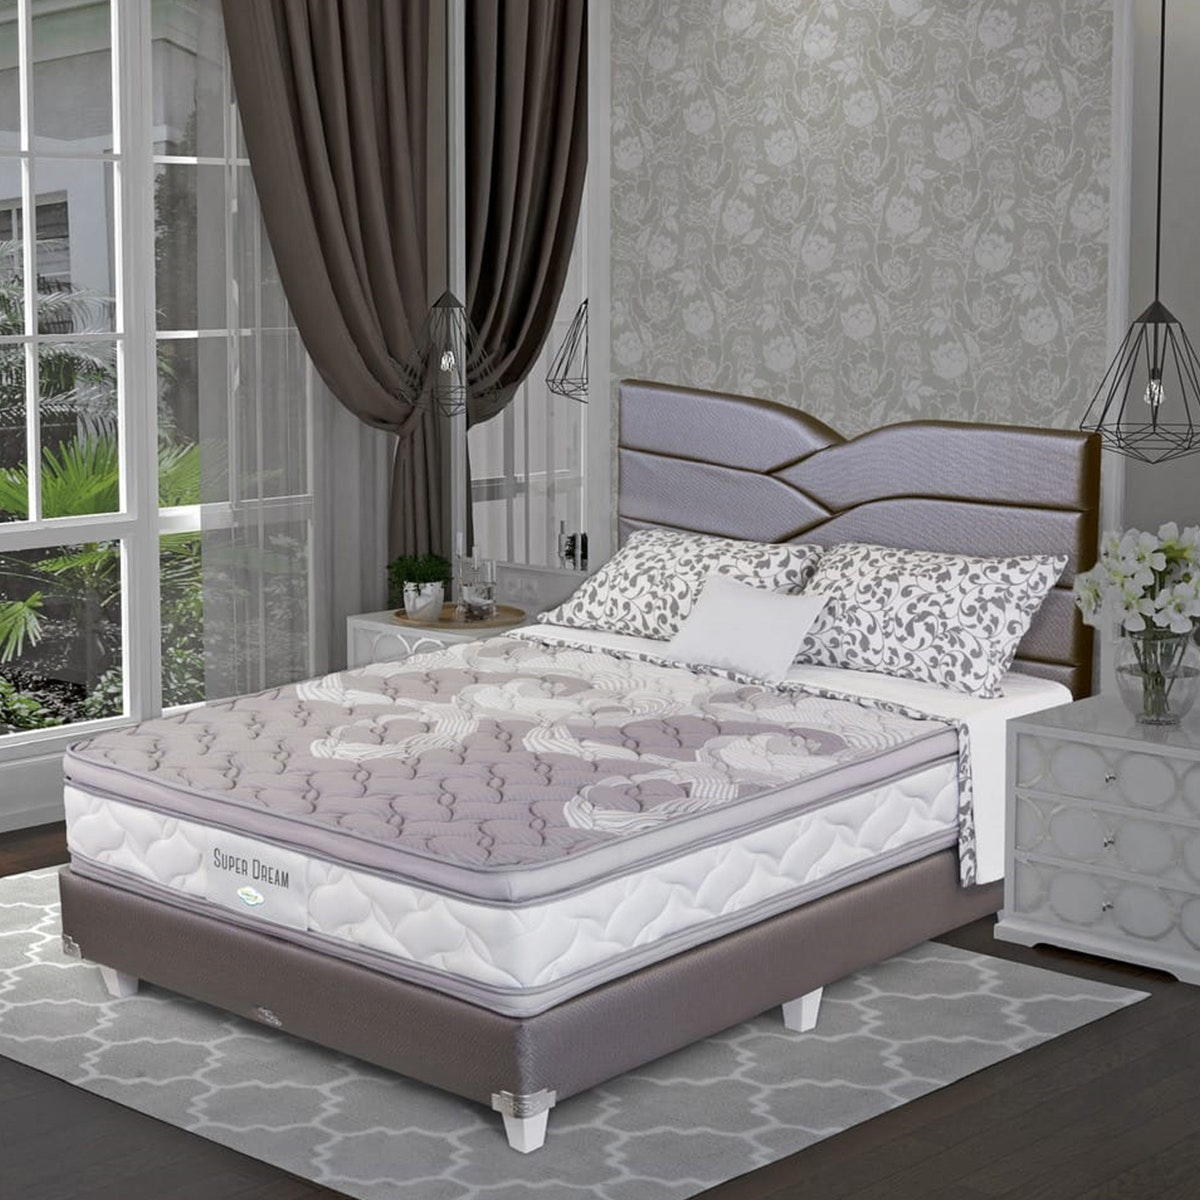 Comforta Kasur Super Dream Uk 200x200